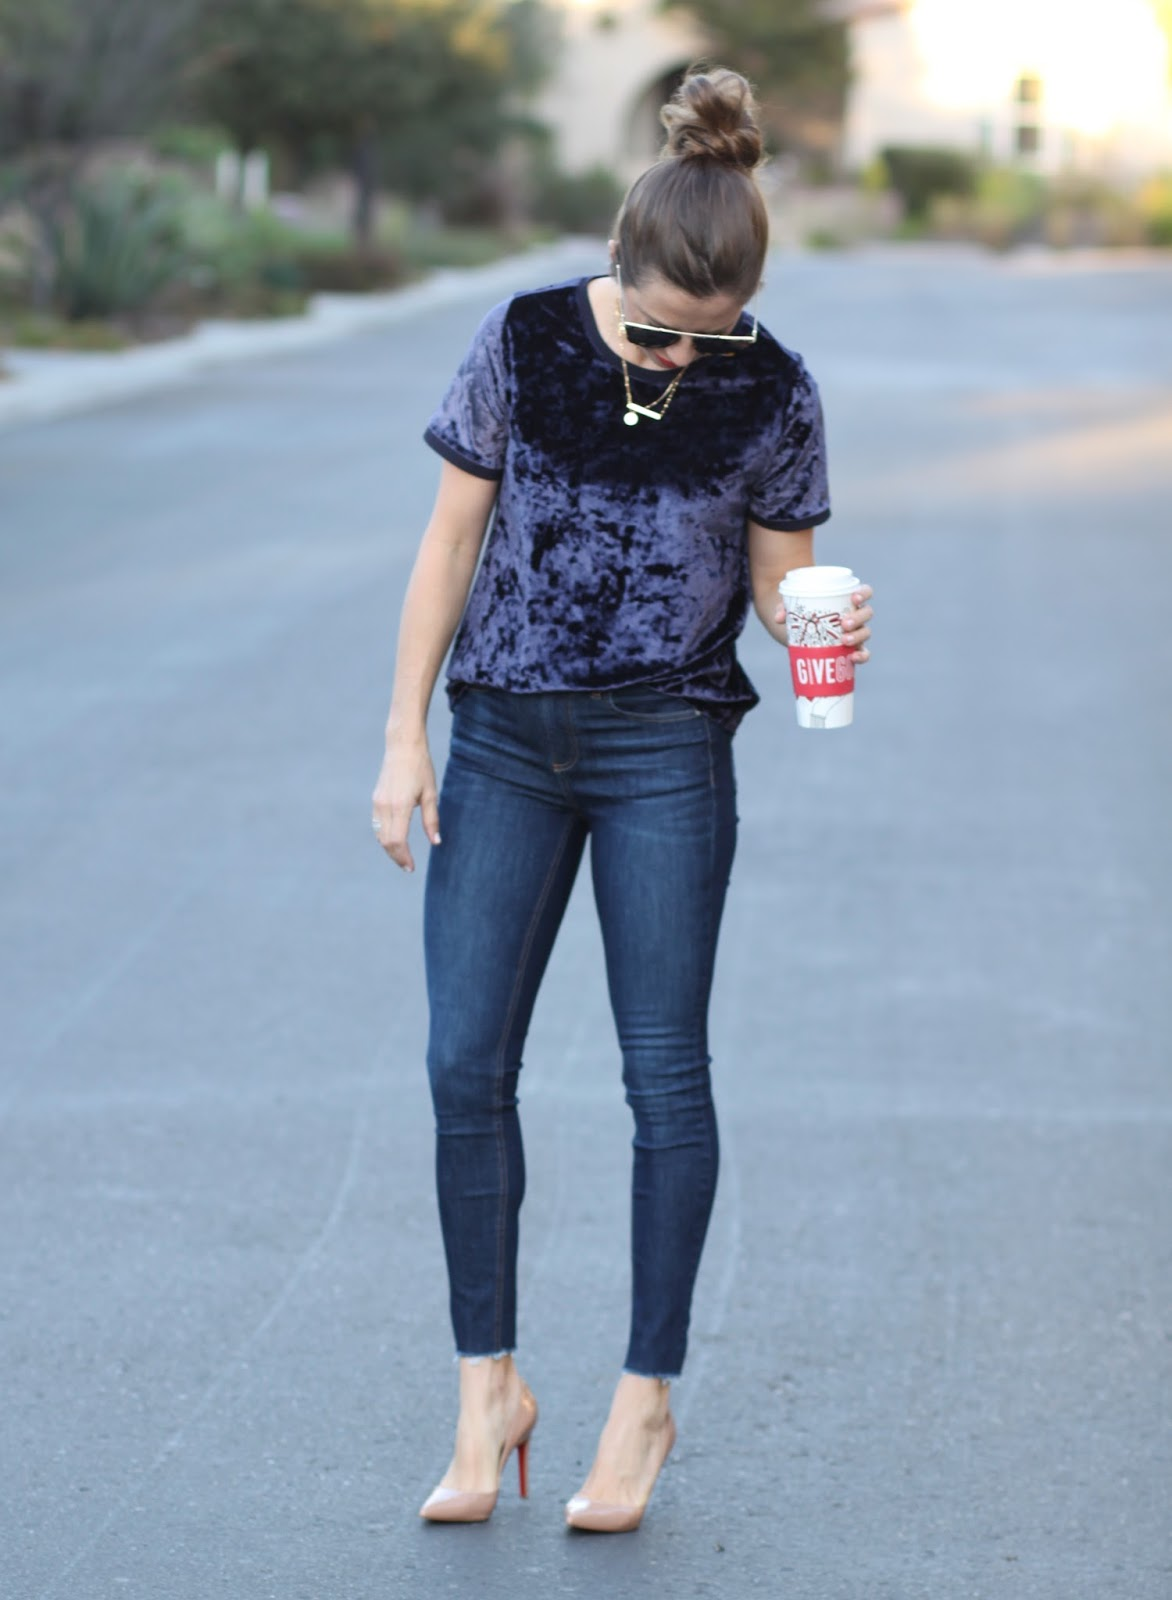 velvet tee and skinny jeans outfit